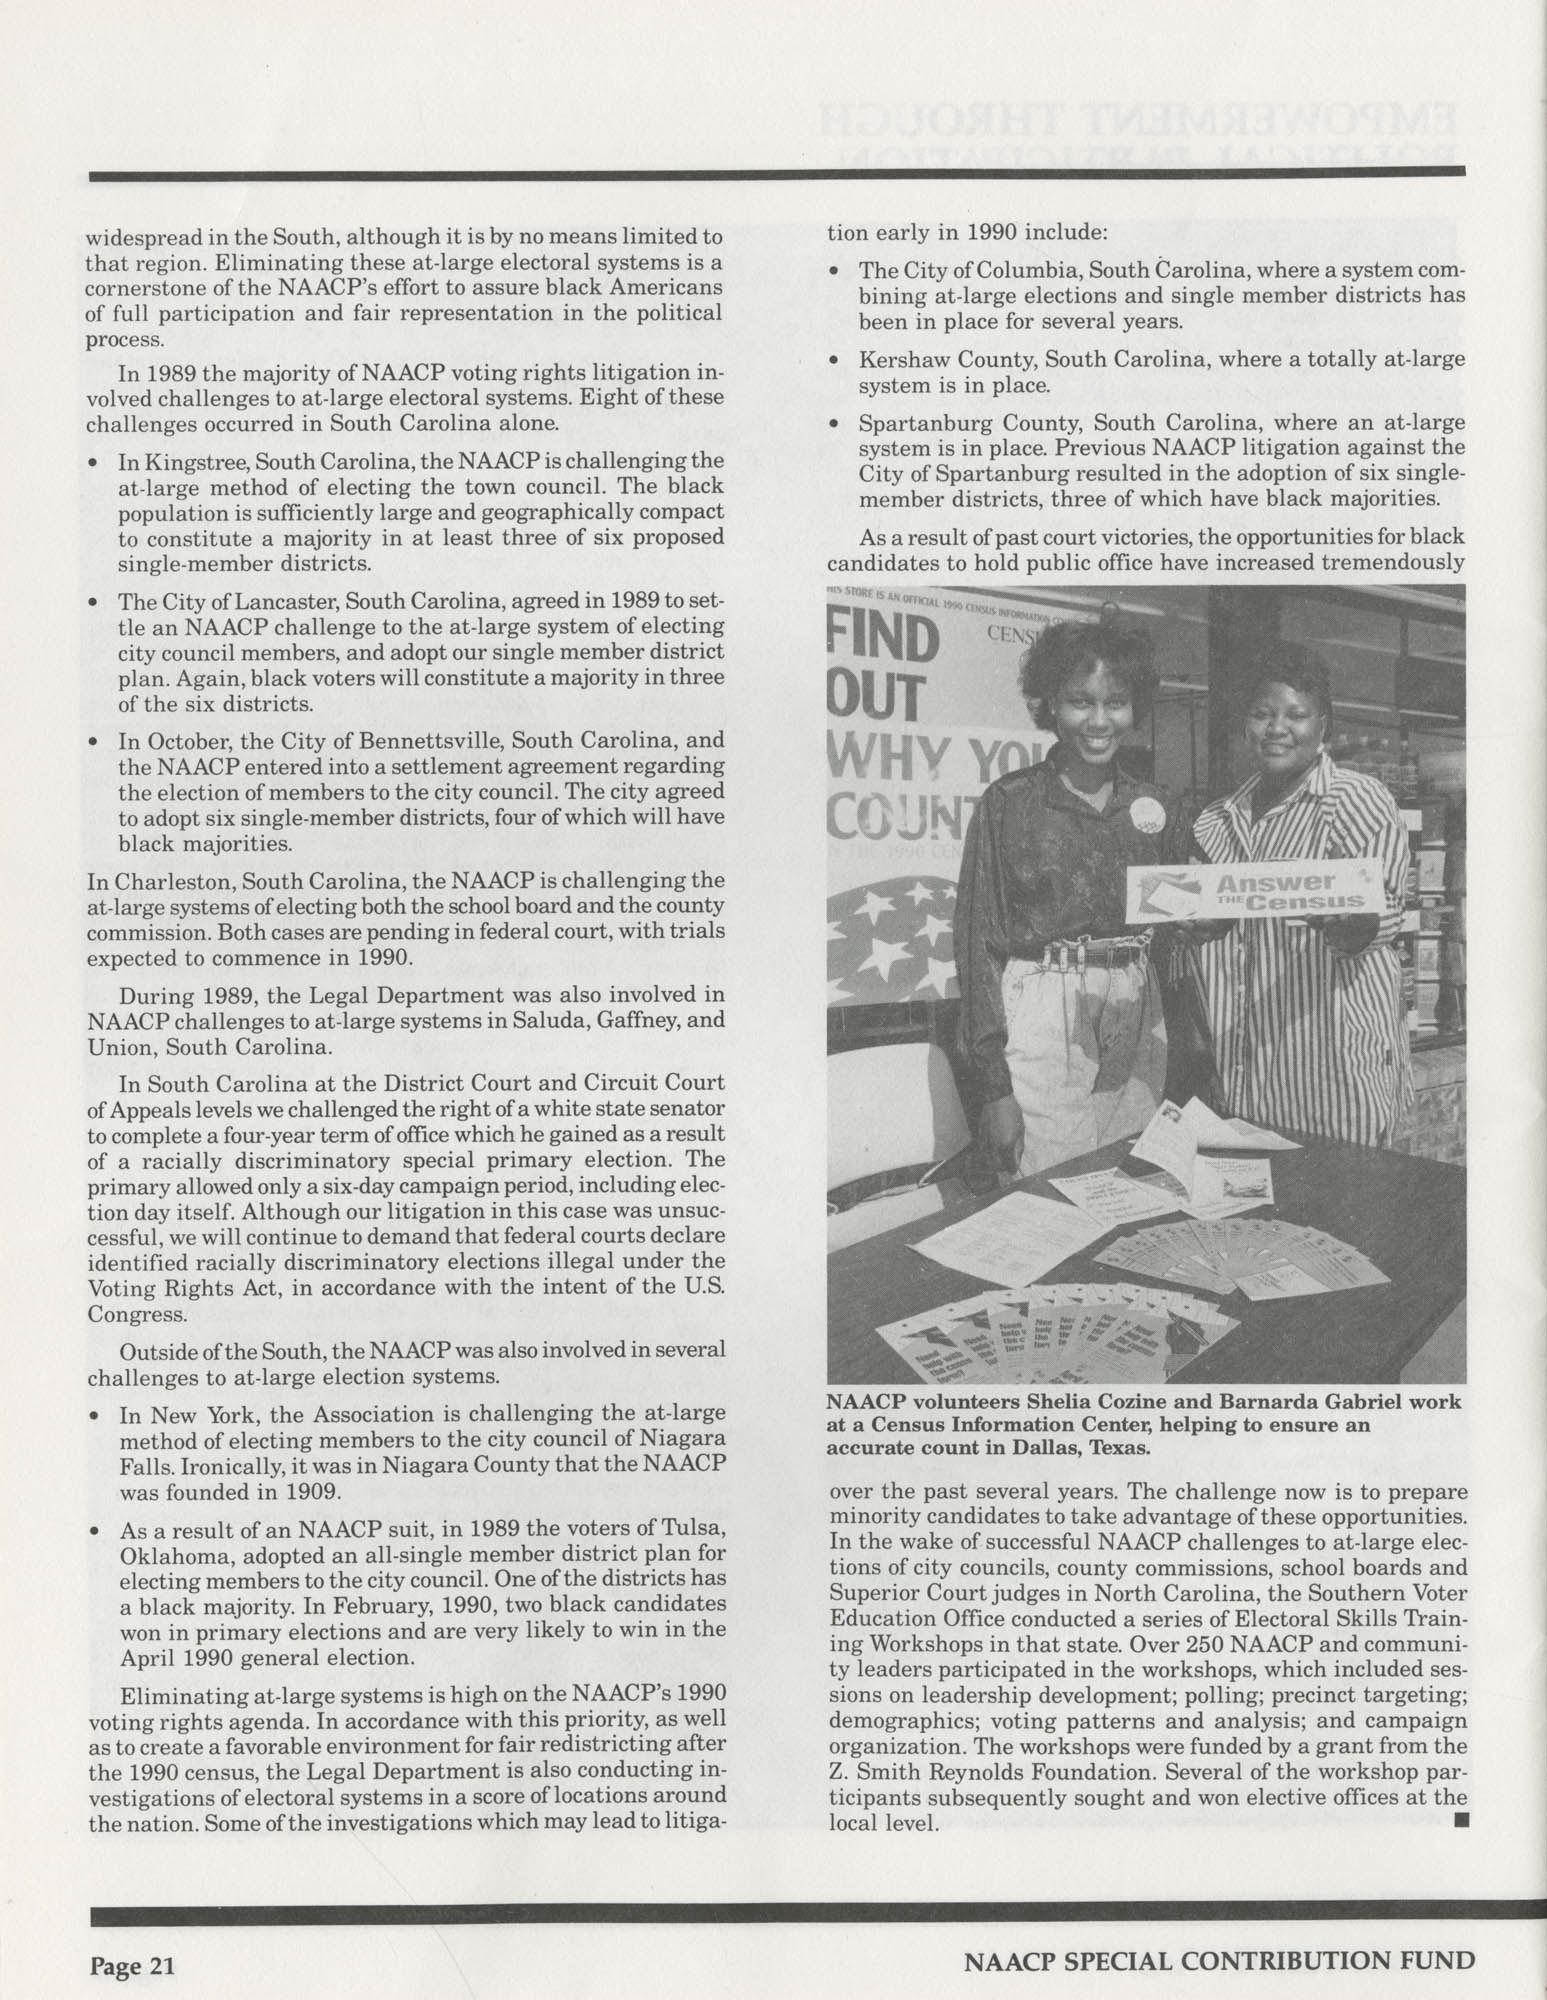 Program Report 1990, Special Contribution Fund, NAACP, Page 21